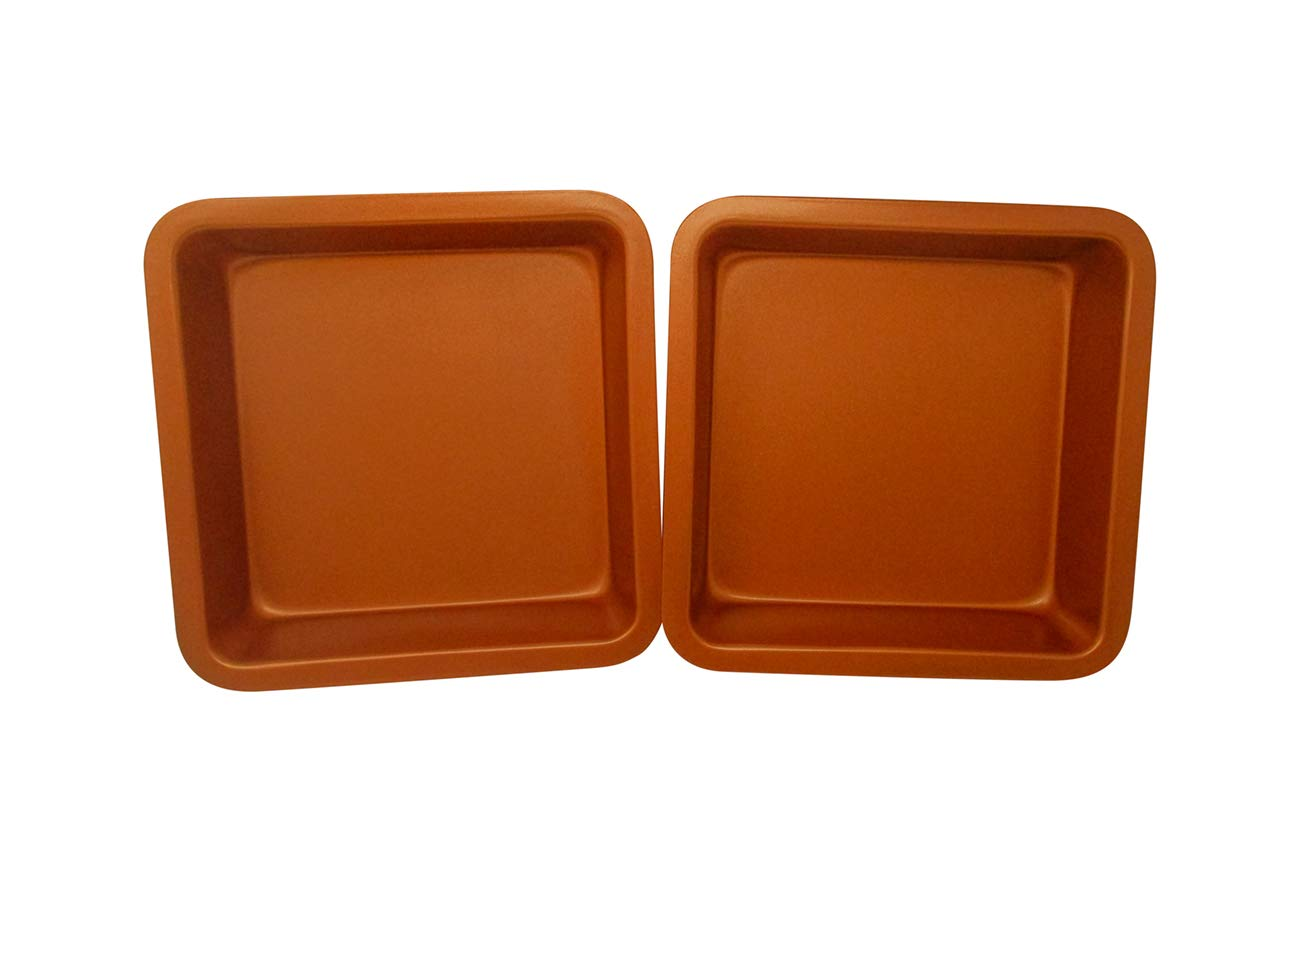 Set of 2 Copper Colored Square Baking Tin Pan by Trademark Innovations